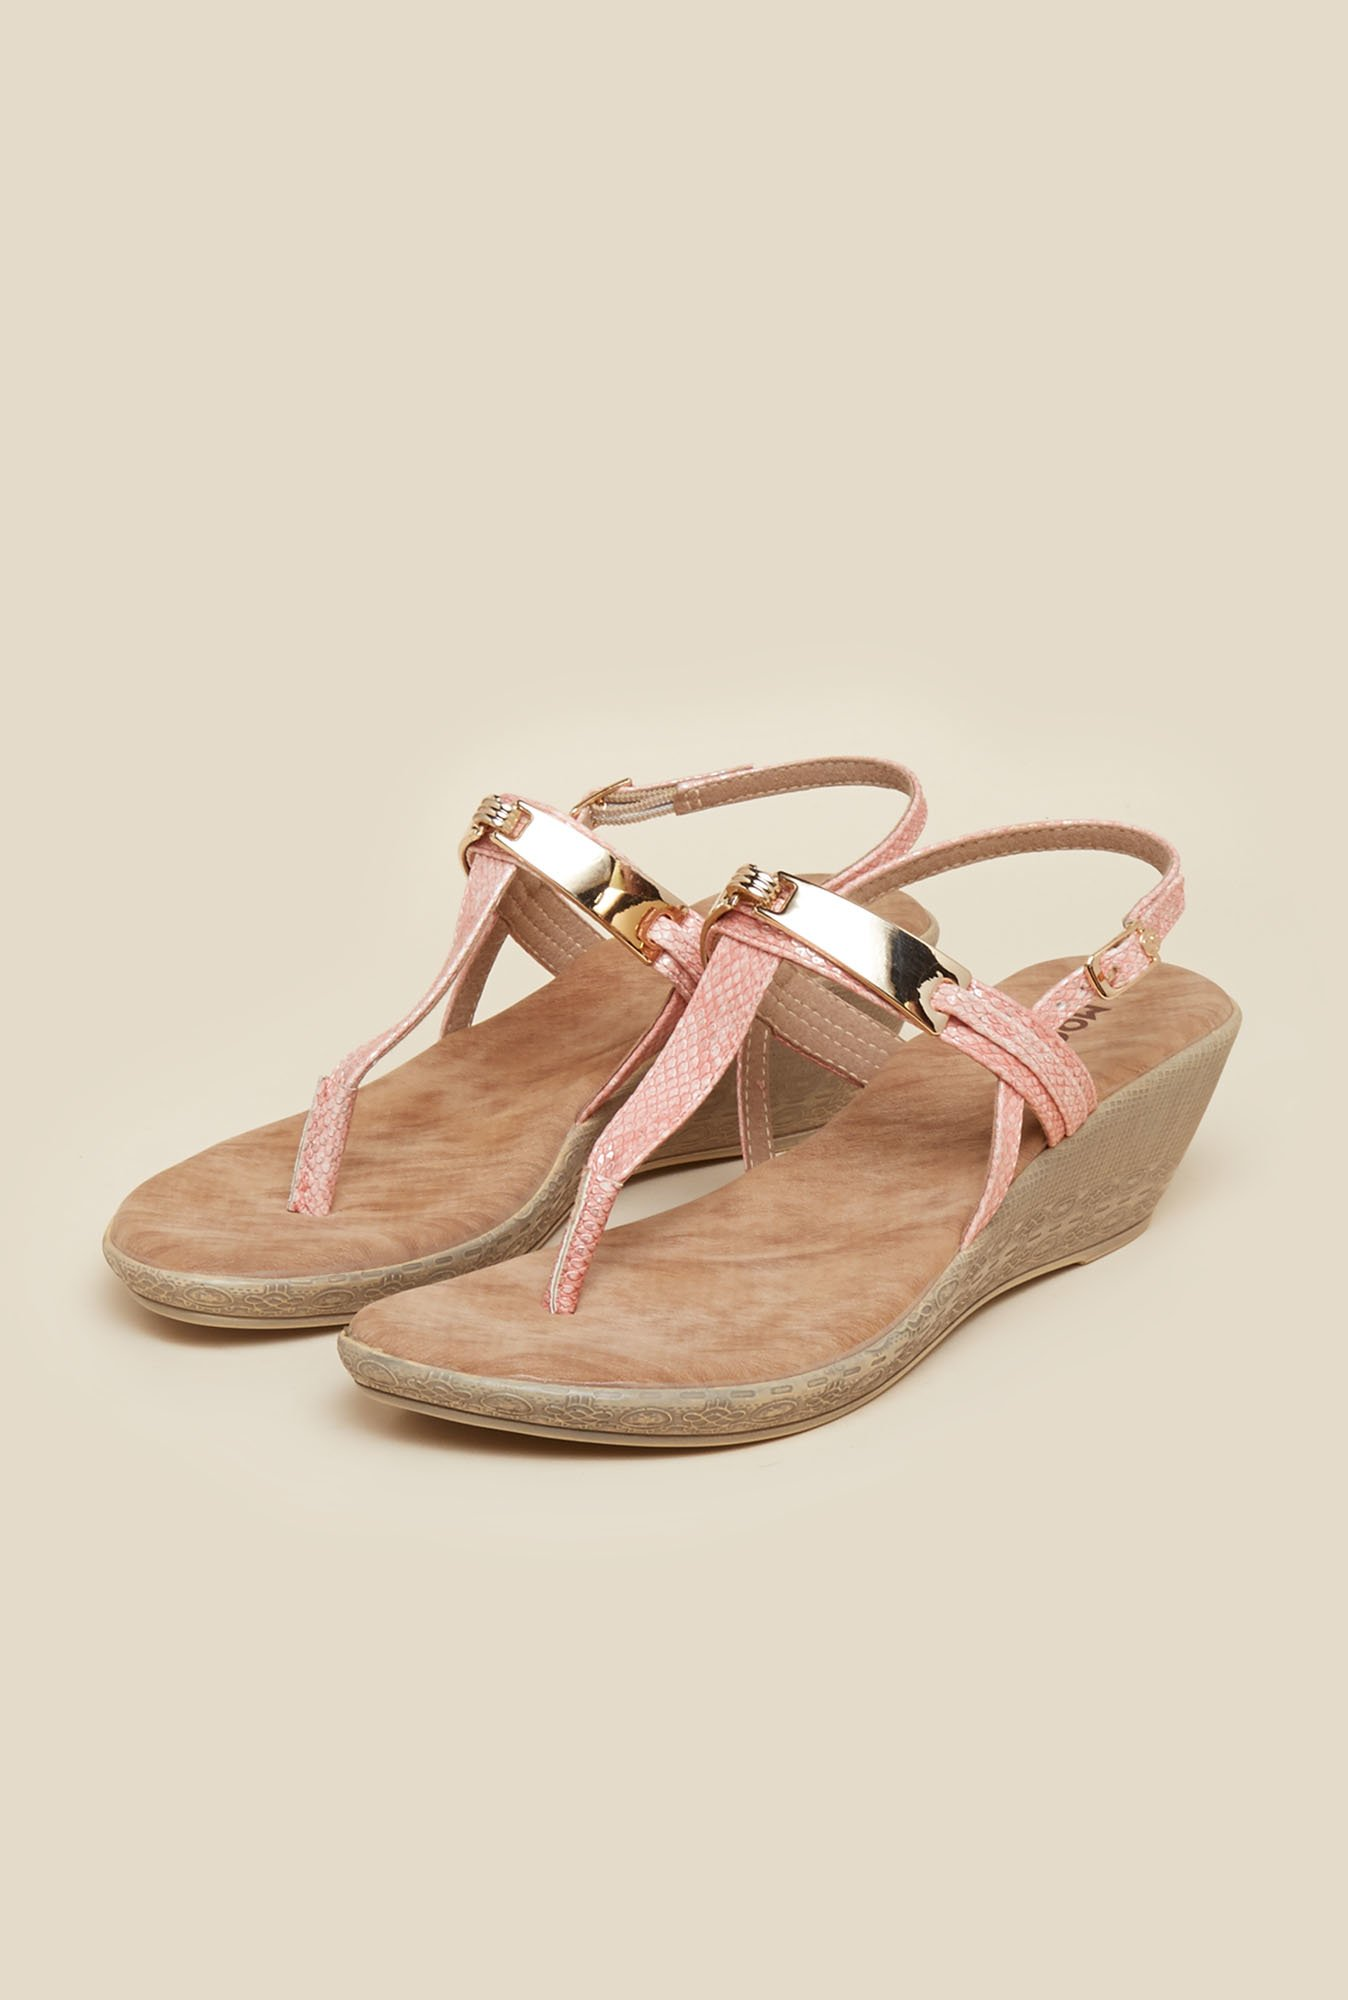 Mochi Peach Wedge Heel Sandals